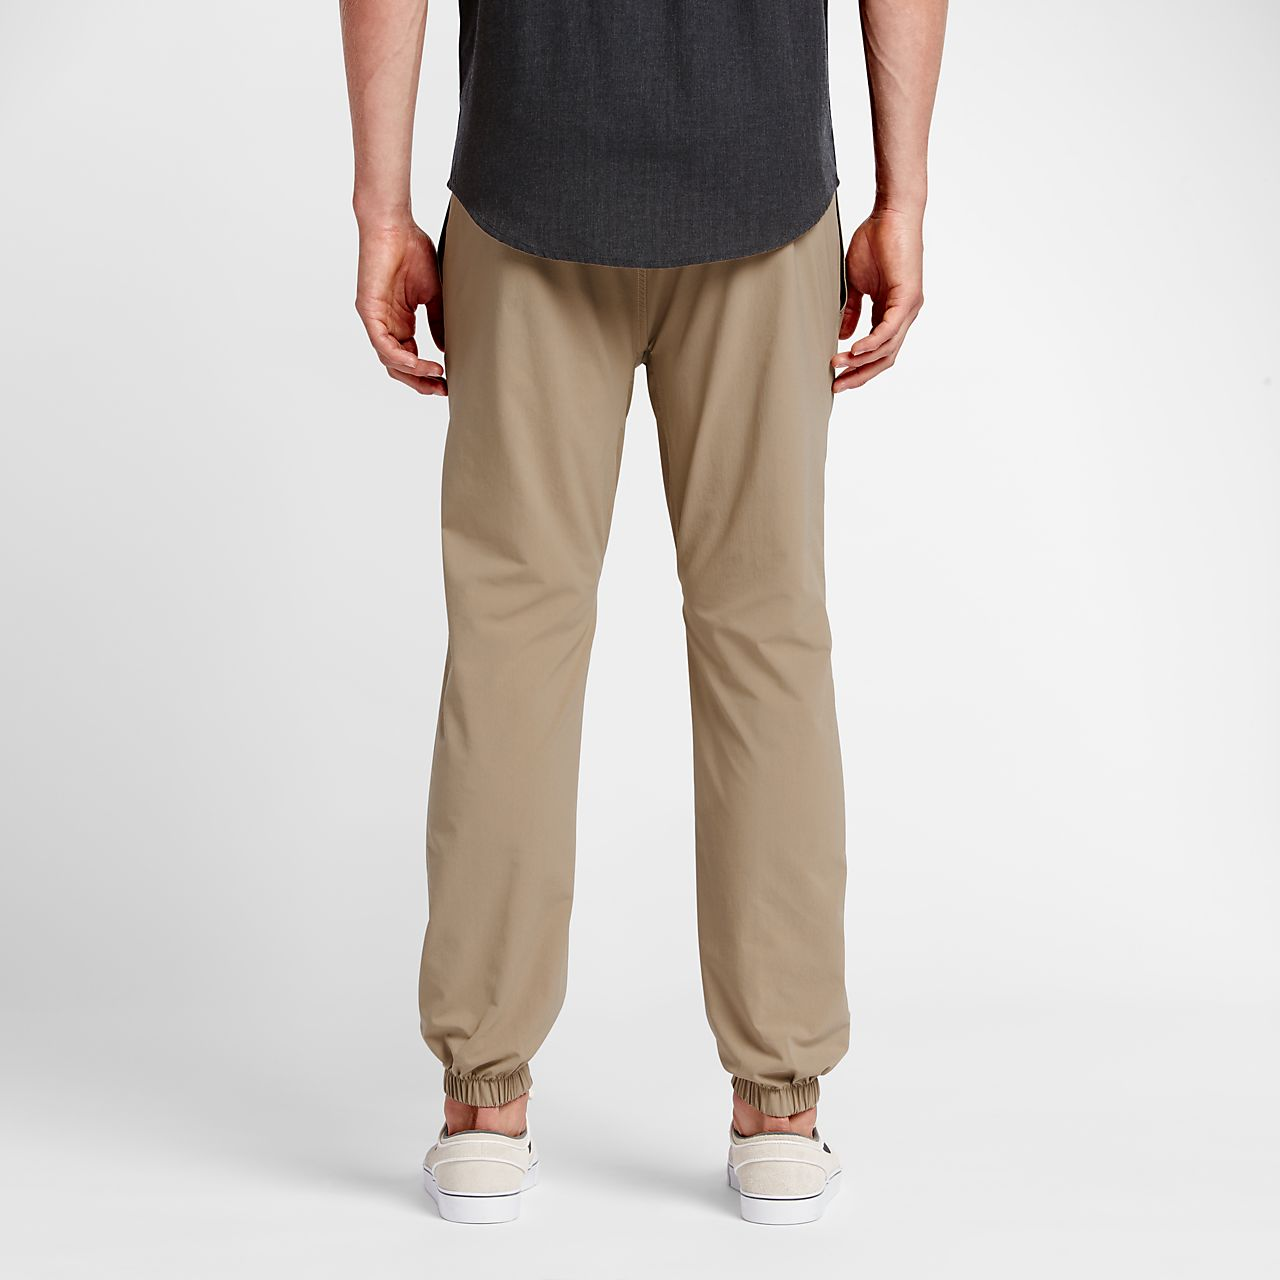 Shop men's regular 30/29 pants at Eddie Bauer. % Satisfaction guaranteed. Since